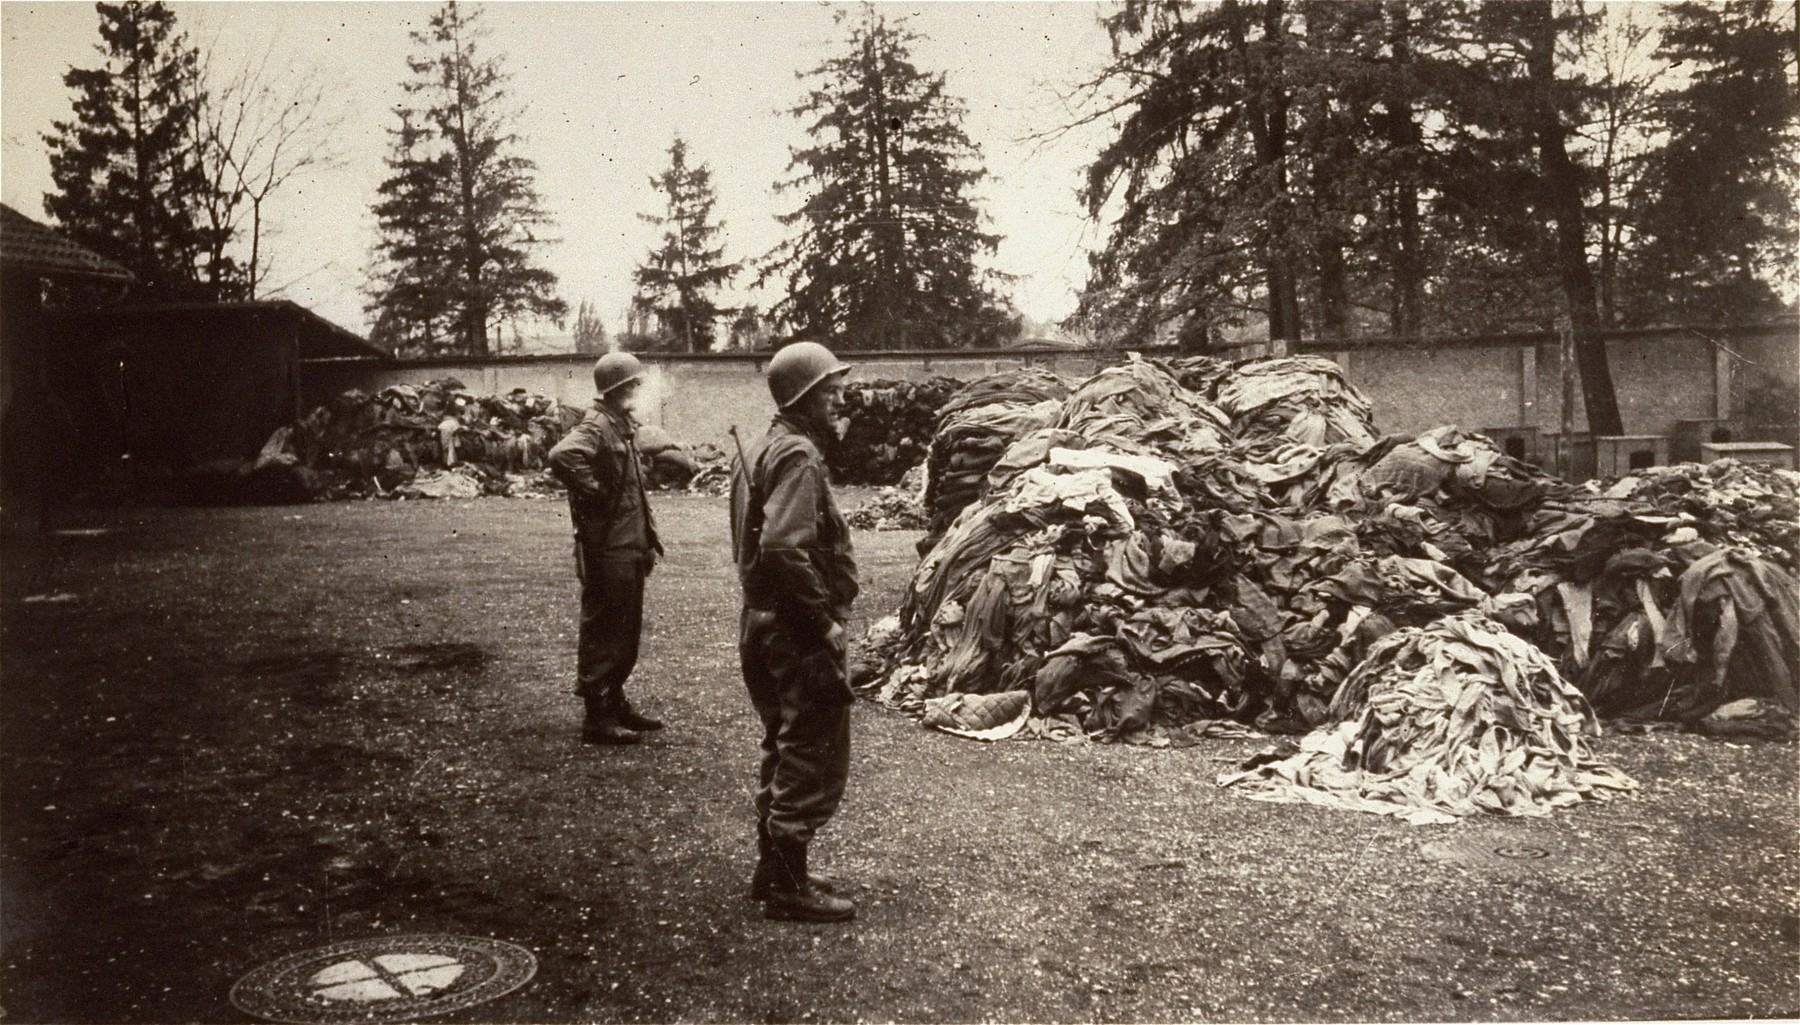 American soldiers in Dachau examine piles of prisoners' clothing found near the crematorium.